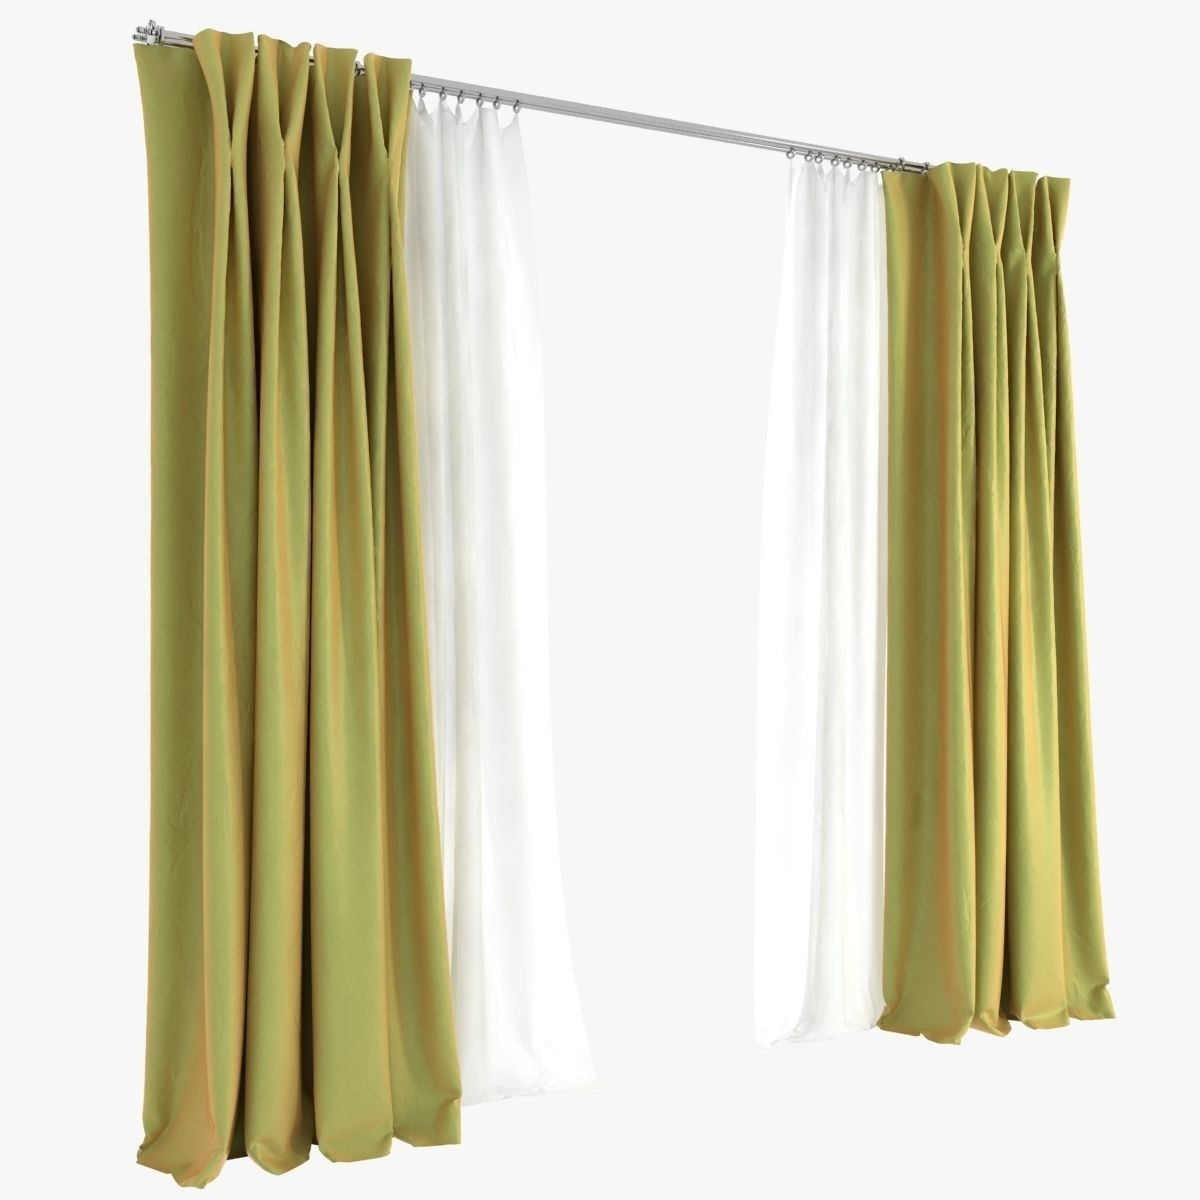 Double Pinch Pleat Curtains 3d Model Max Obj Fbx Mtl In Double Pinch Pleat Curtains (Image 3 of 15)